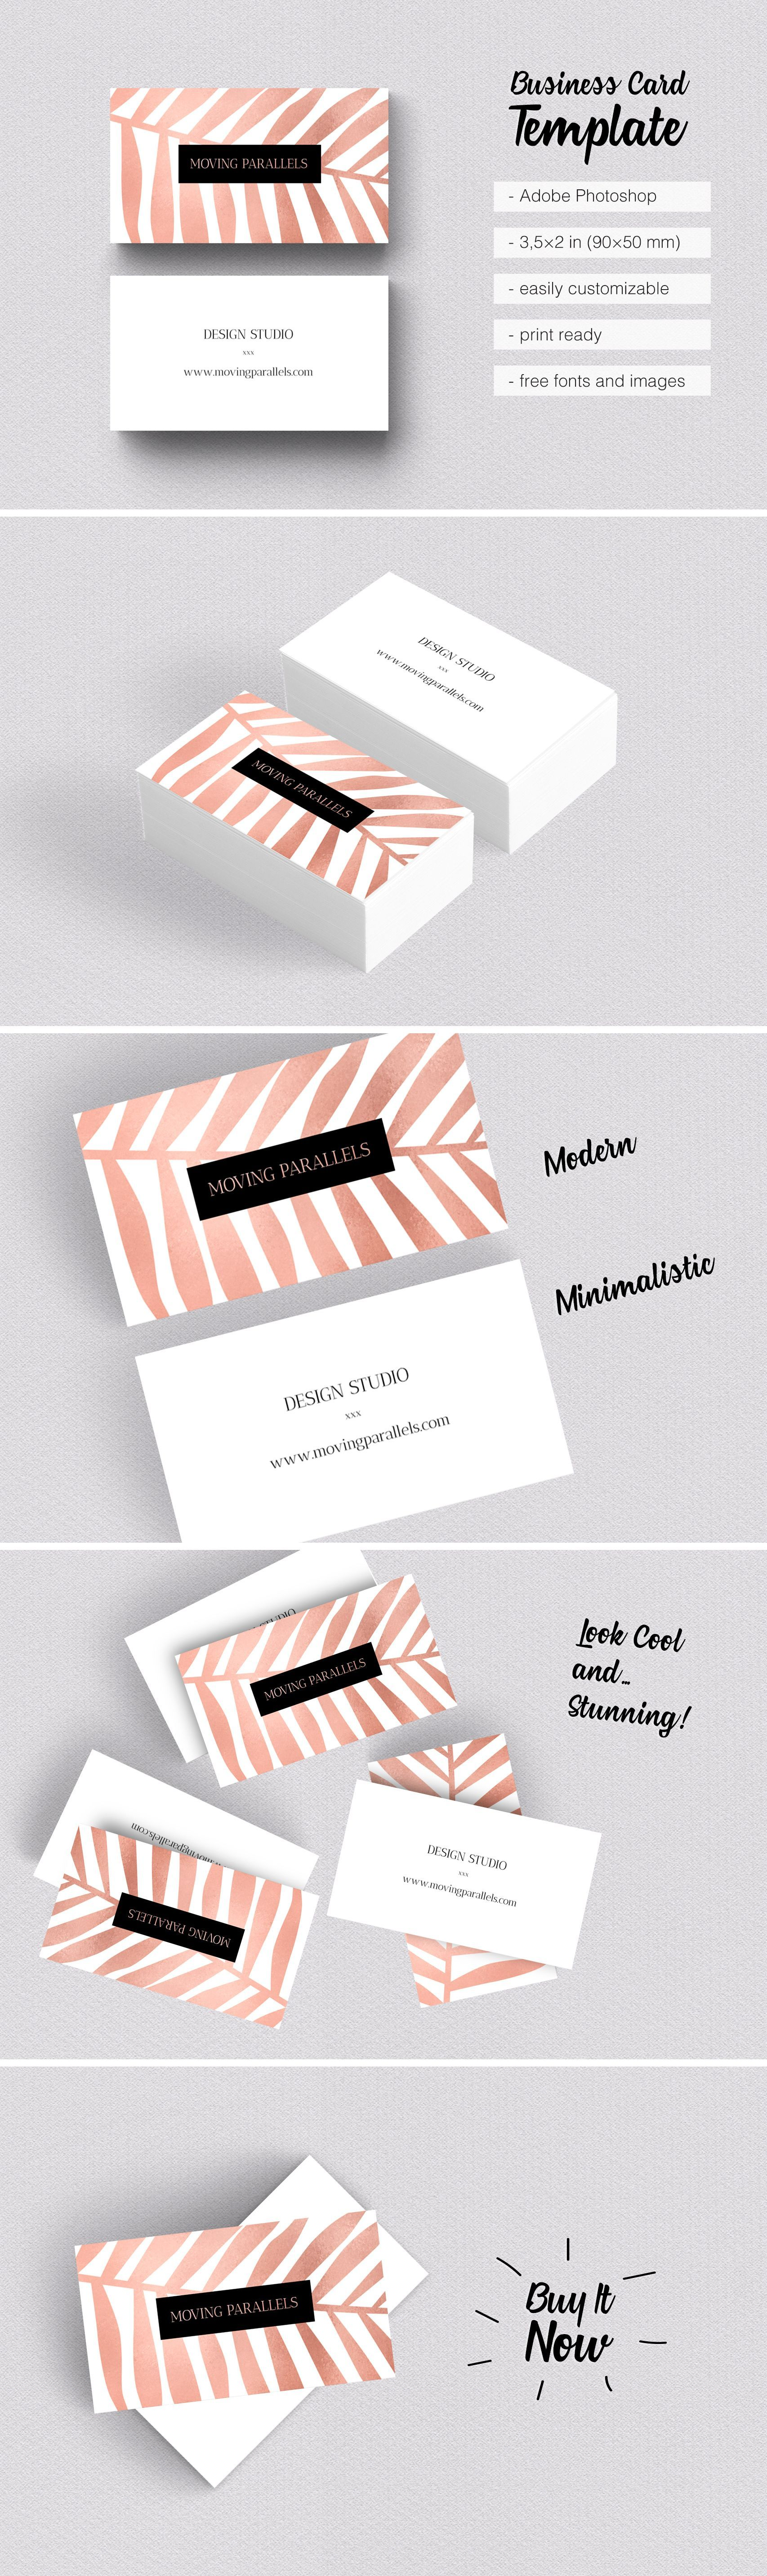 8 rose gold business card etsy is classy sophisticated and 8 rose gold business card etsy is classy sophisticated and elegant visiting card templates reheart Image collections